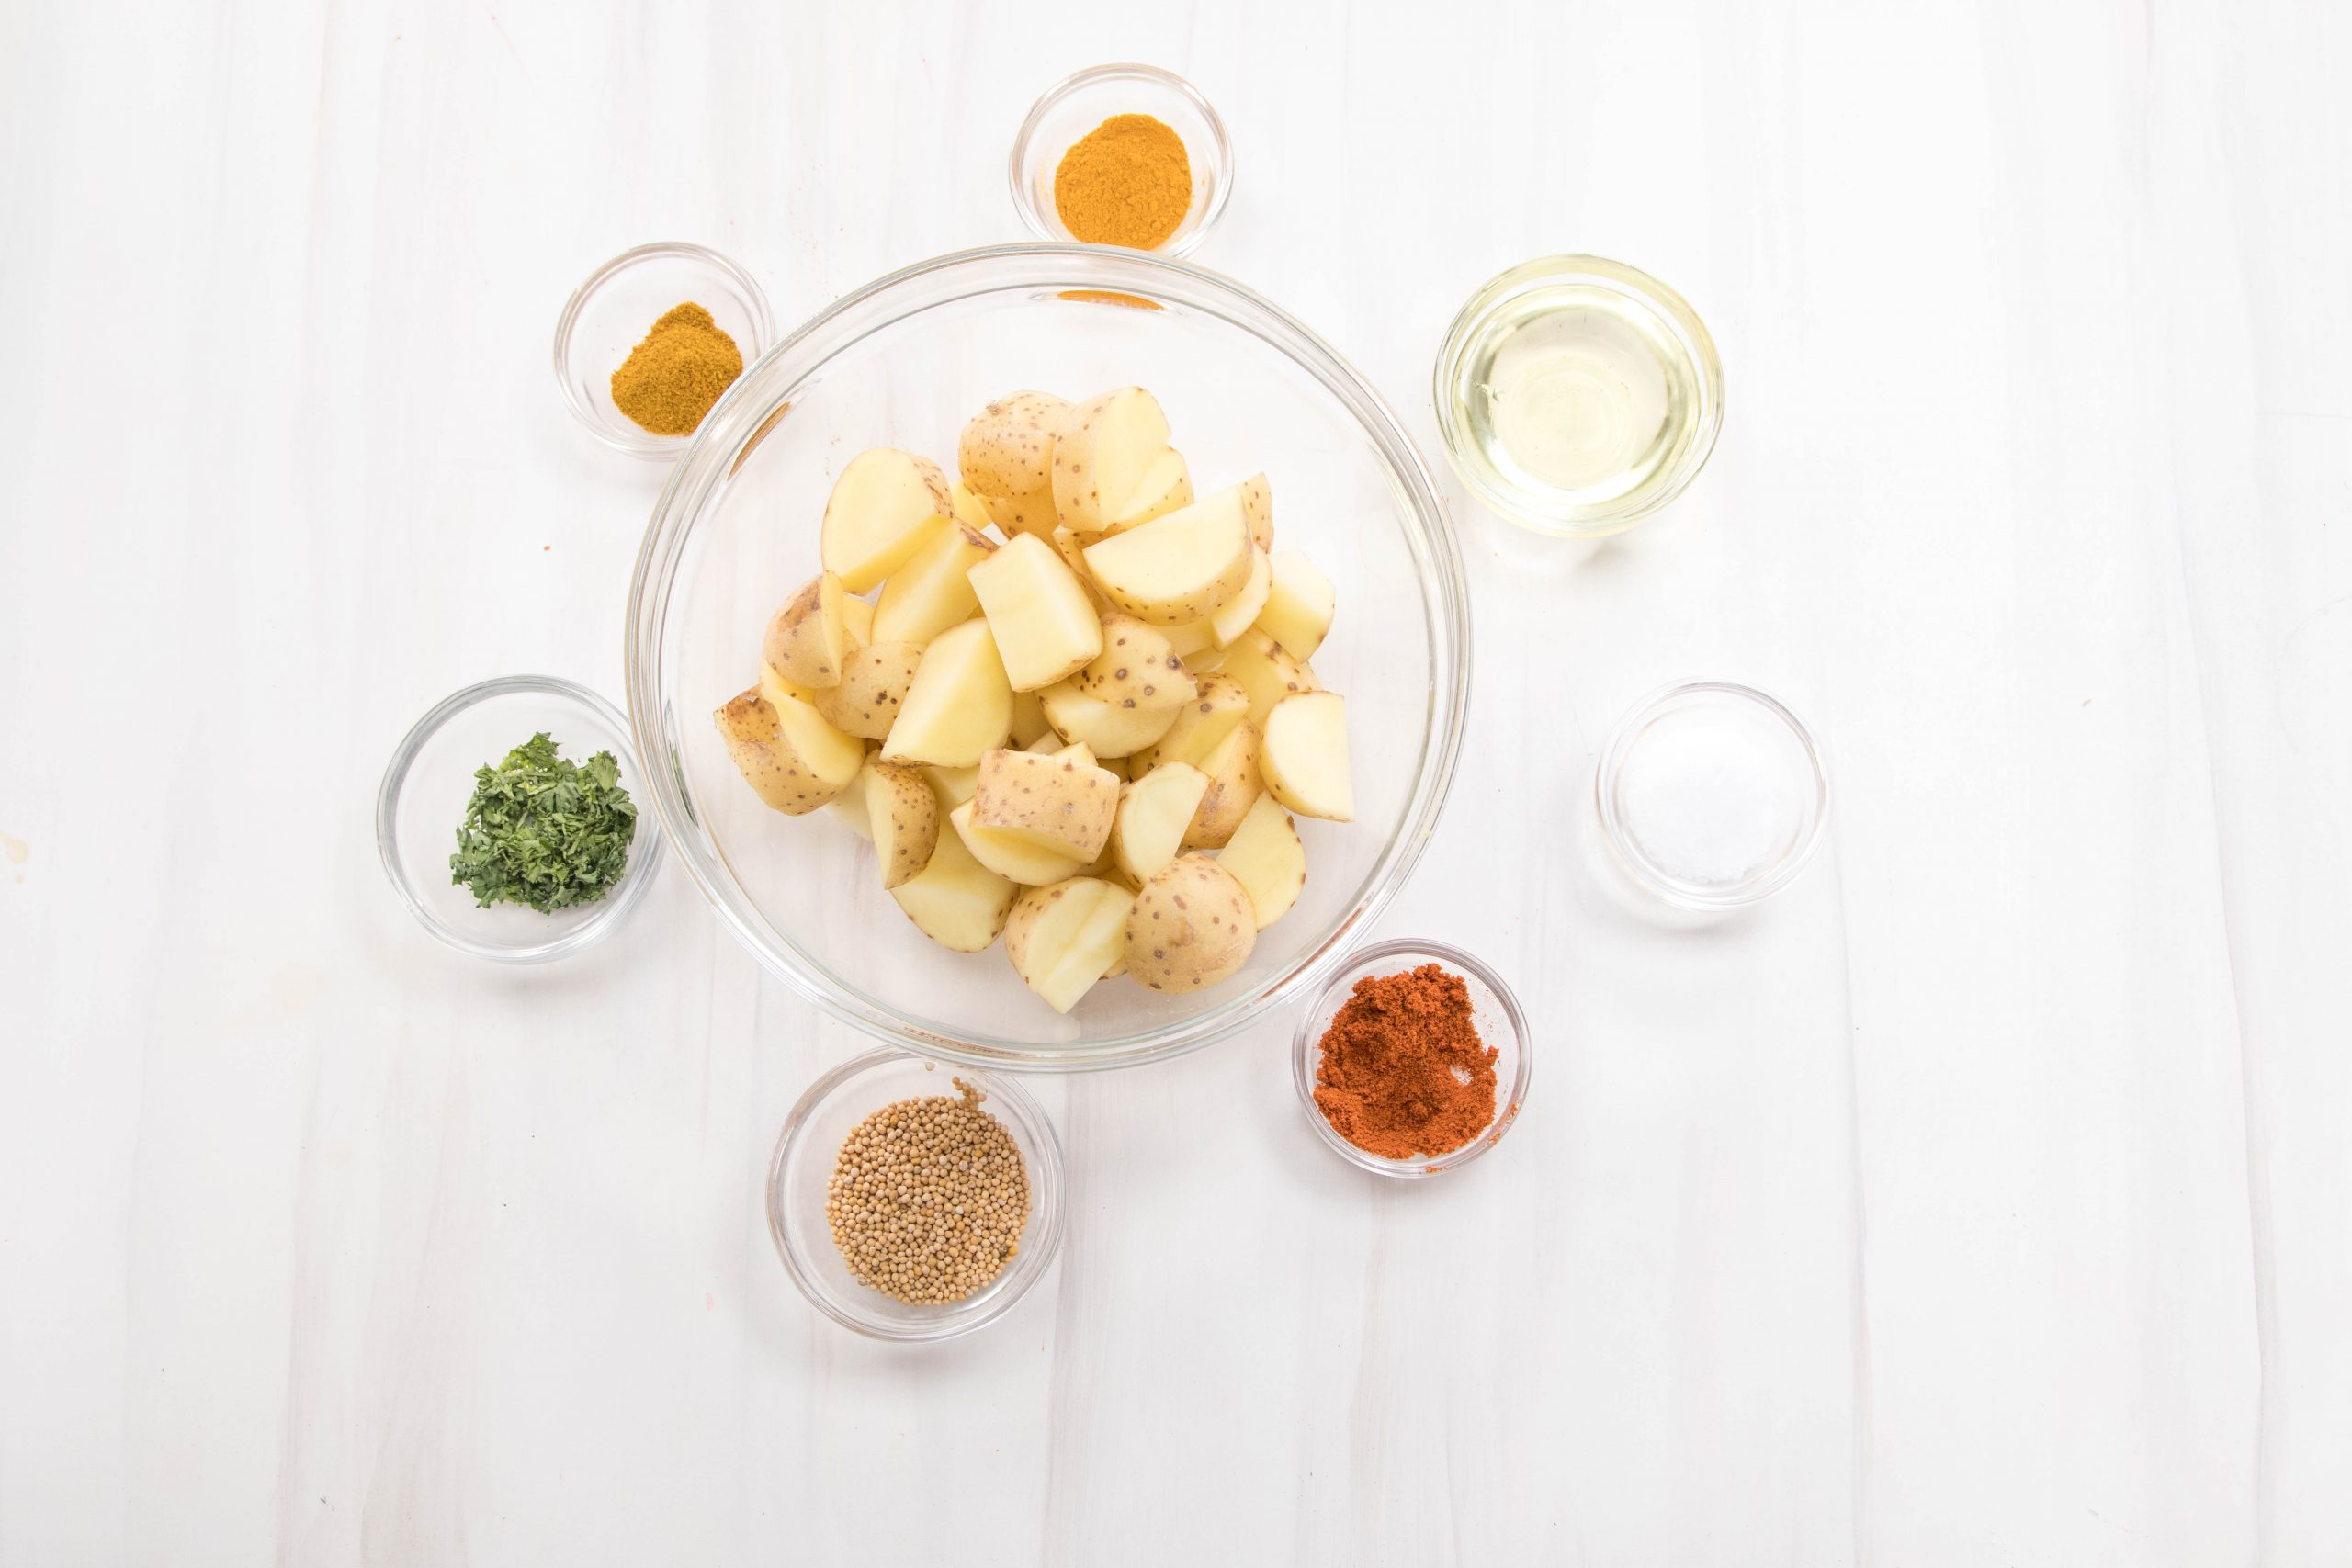 A white background with glass containers with spices and cut sliced potatoes in a big bowl in the middle